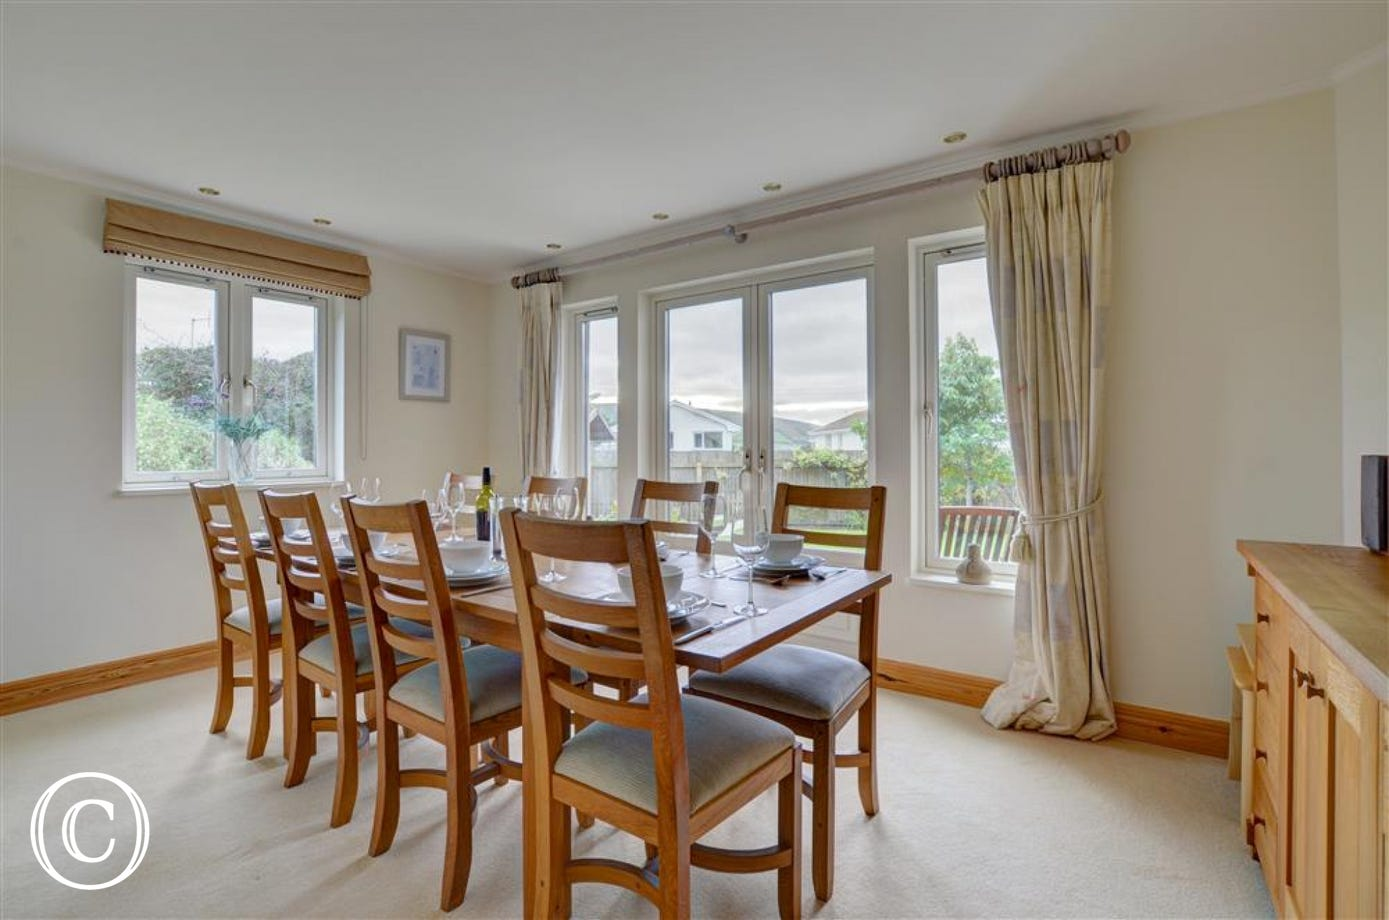 A large separate dining room with French doors also opening to the garden offers a more elegant option for dining